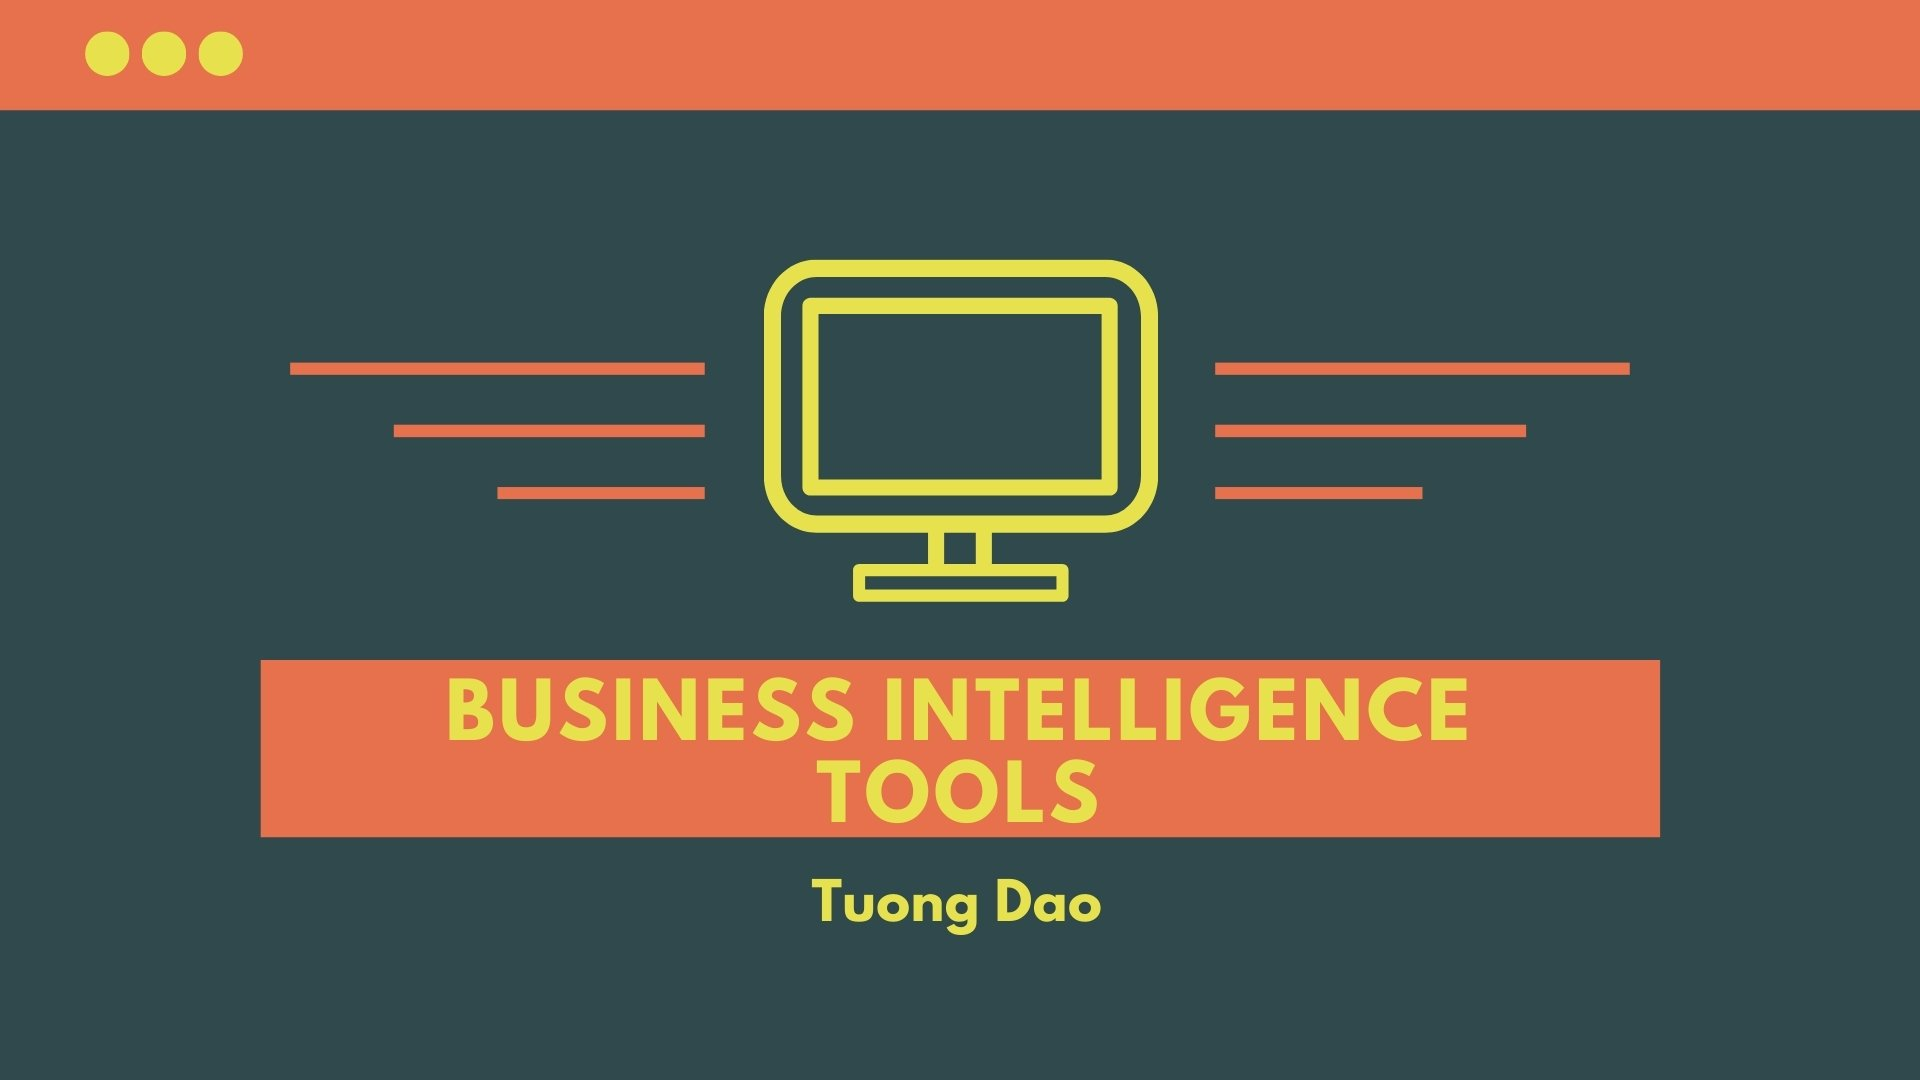 Basic Concepts of Business Intelligence Tools